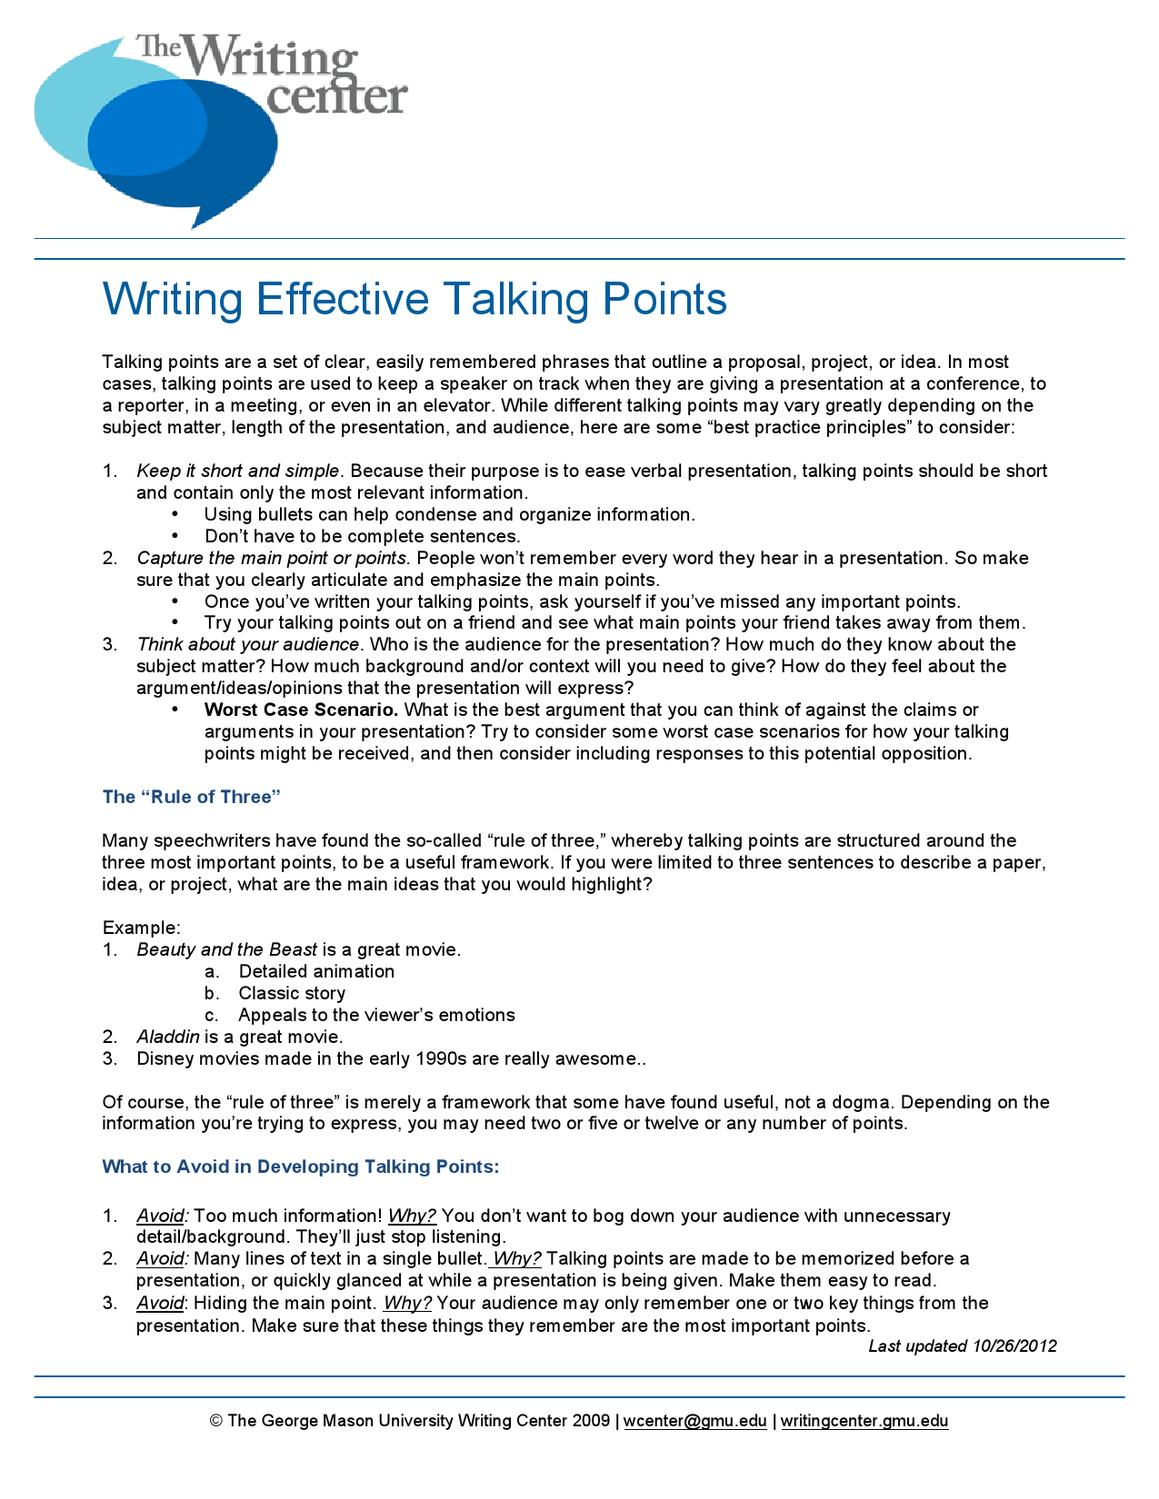 Writing Effective Talking Points By Writing Center Issuu